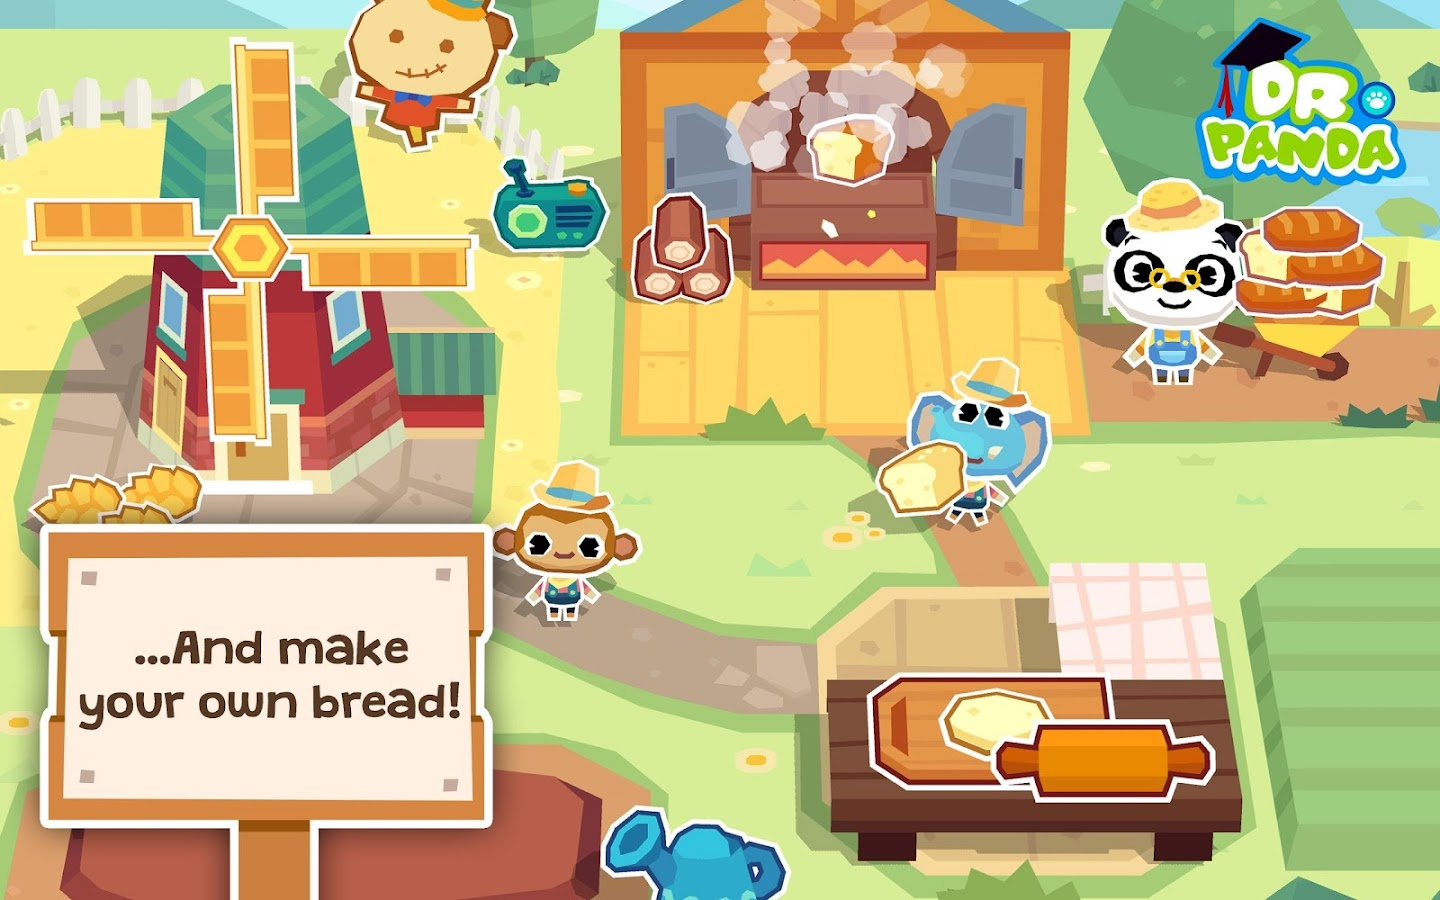 Dr. Panda Farm Screenshot 13